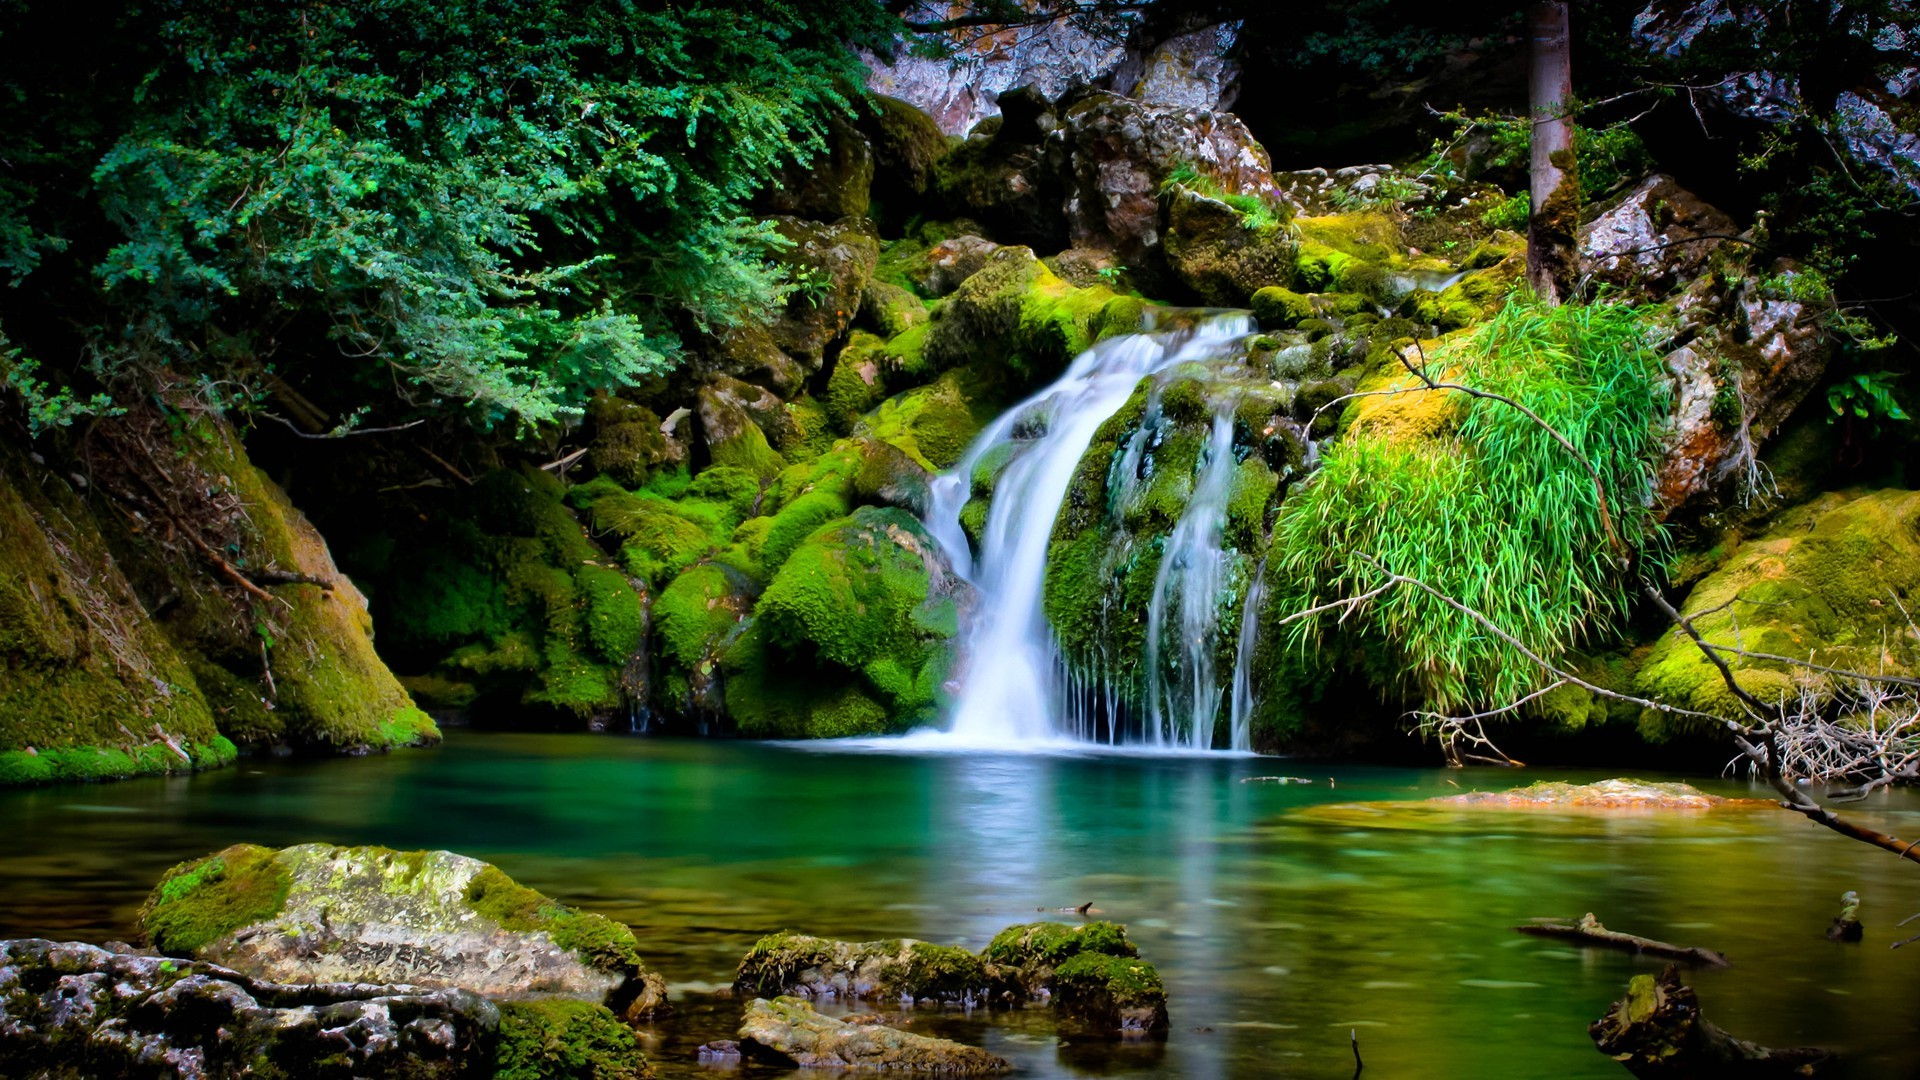 Nature, Landscape, Waterfall, 3d Wallpapers Hd / Desktop - High Resolution Natural Background - HD Wallpaper